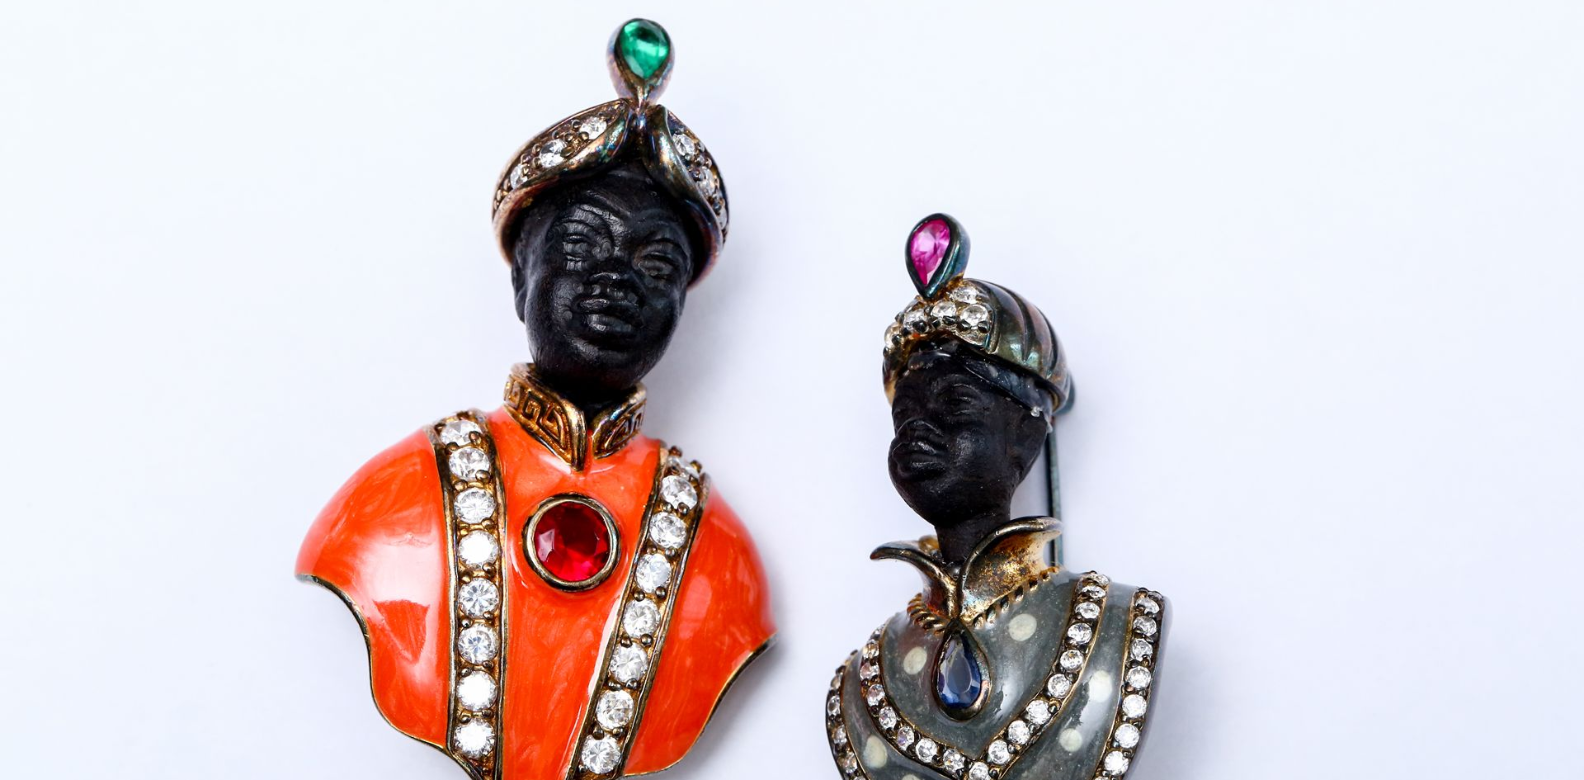 """When I travel, I try to take home an accessory or unique piece of jewellery. These Moor brooches from Venice are made from ebony and precious stones. They make great conversation pieces"""